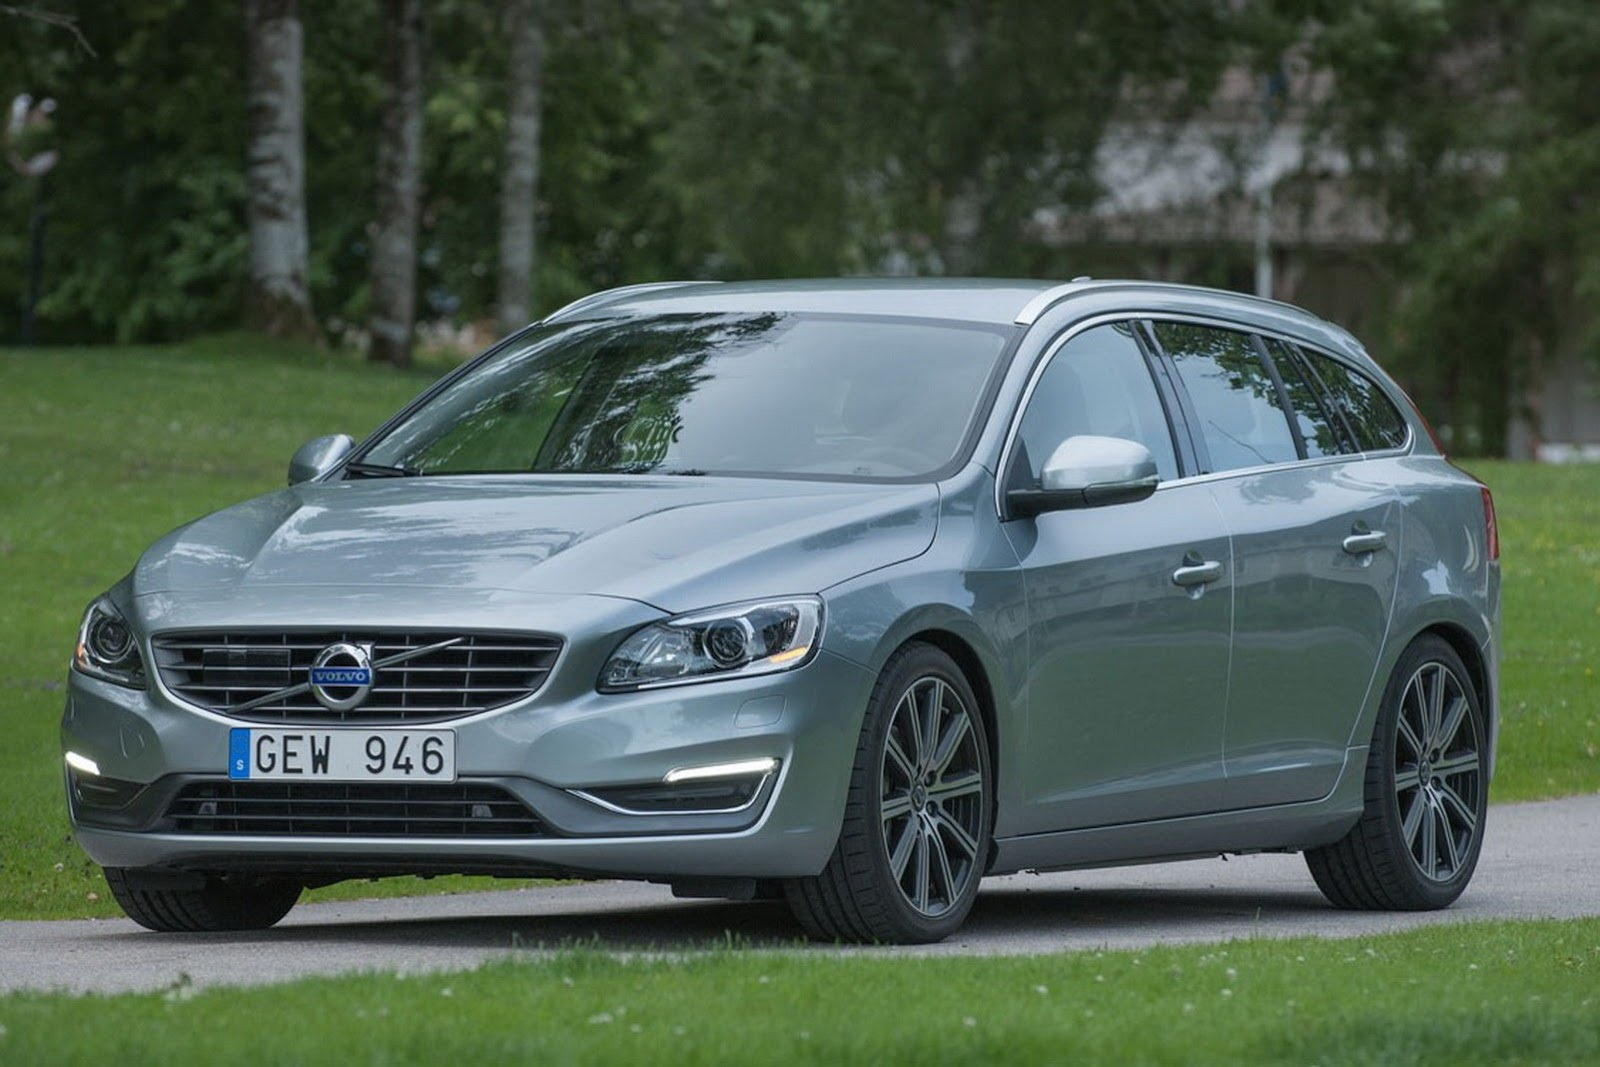 2015 volvo v60 wagon us pricing announced autoevolution. Black Bedroom Furniture Sets. Home Design Ideas